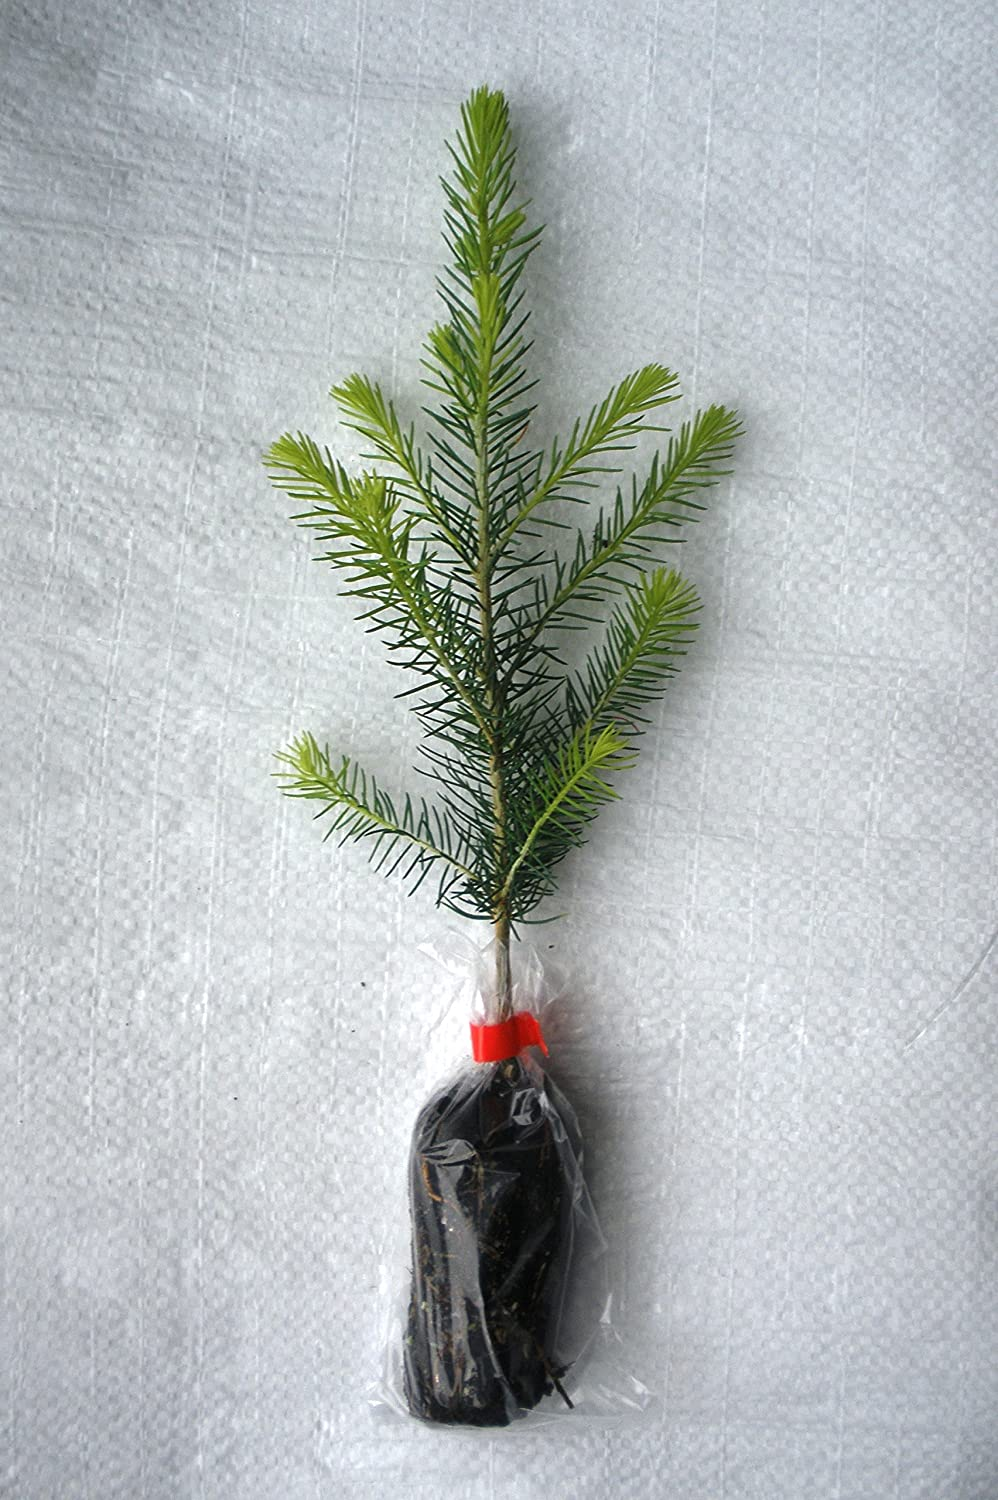 1 x Norway Spruce, Abies Picea Evergreen Christmas Tree Plug Plant Seedling. Christmas Trees For Life.